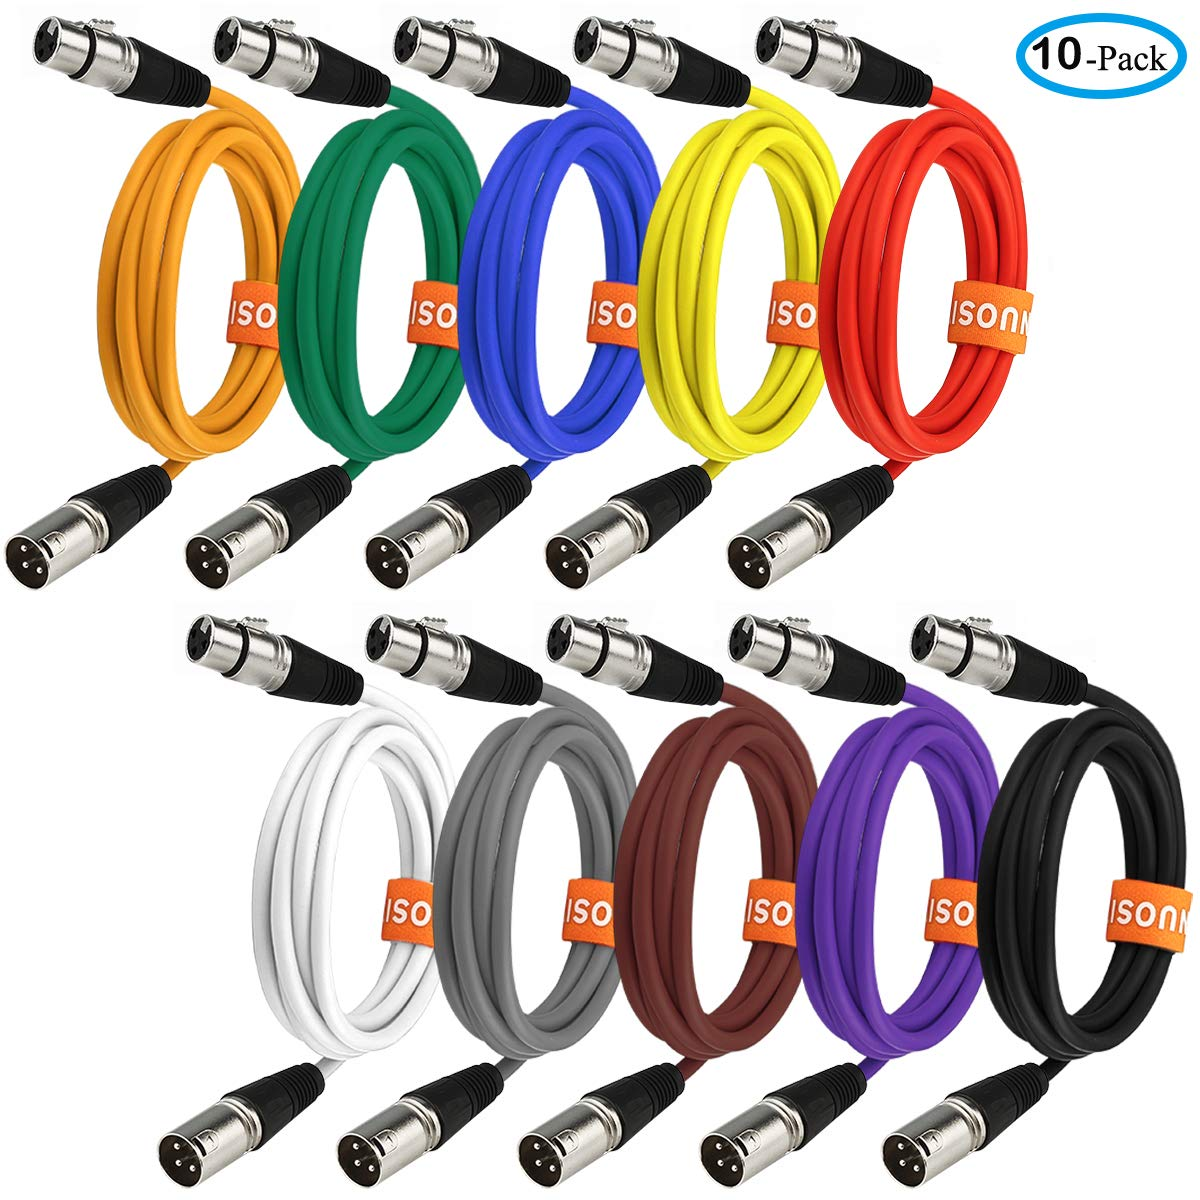 NUOSIYA Colored Microphone Patch Cable 6 feet, XLR male to female mic cables(10-pack), 3 pin double shielded balanced DMX cables/XLR cables.